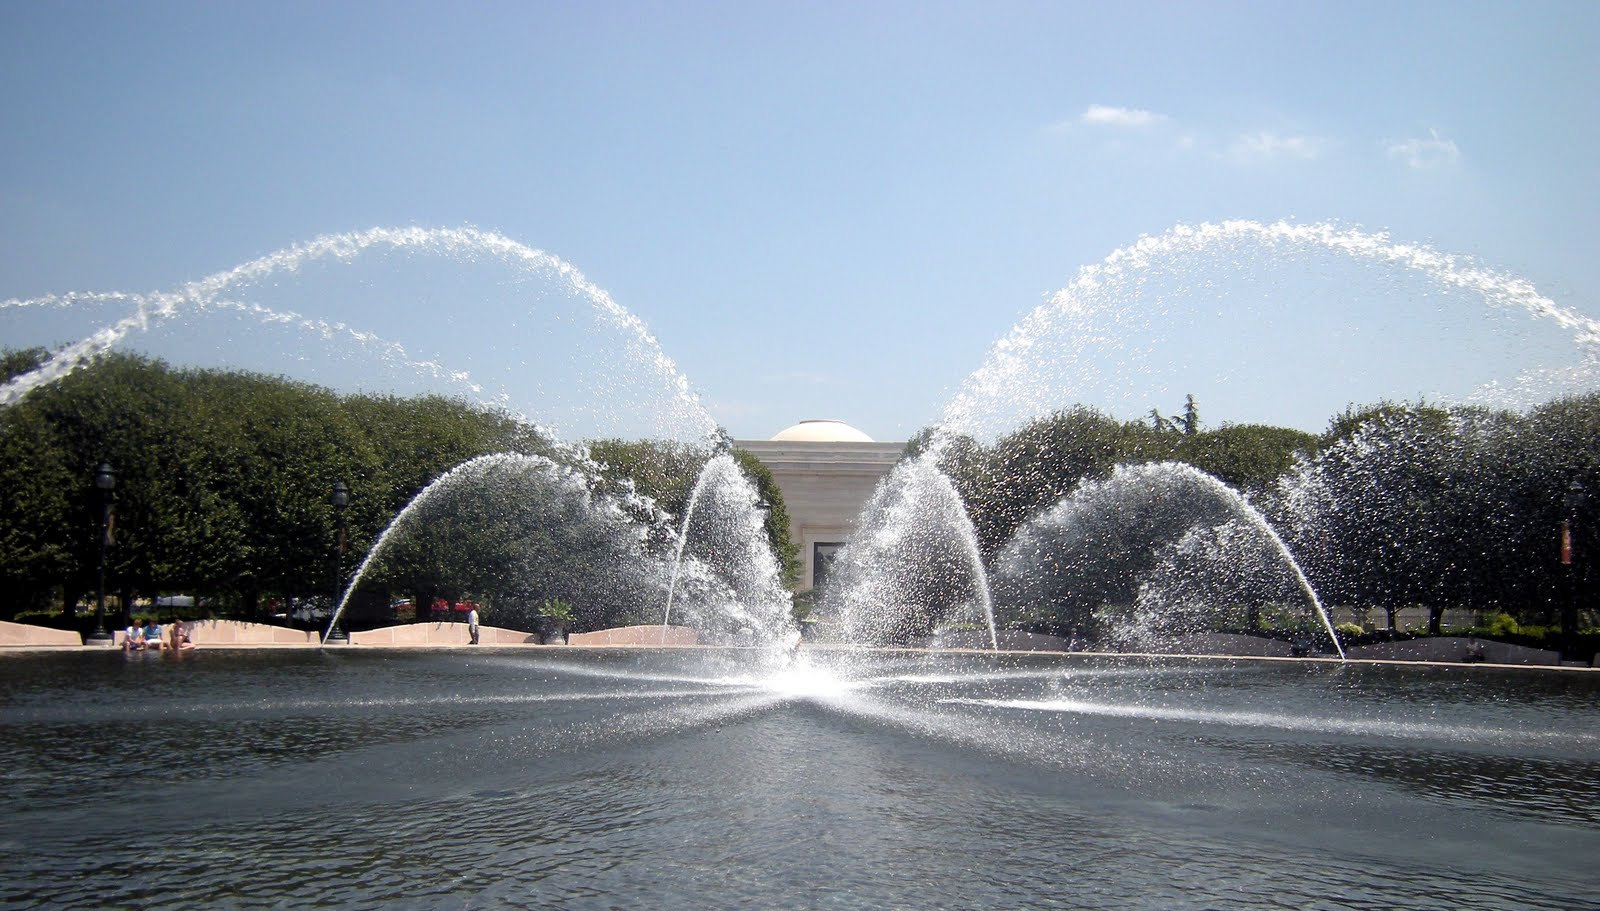 The Mathematical Tourist: Fountain Parabolas